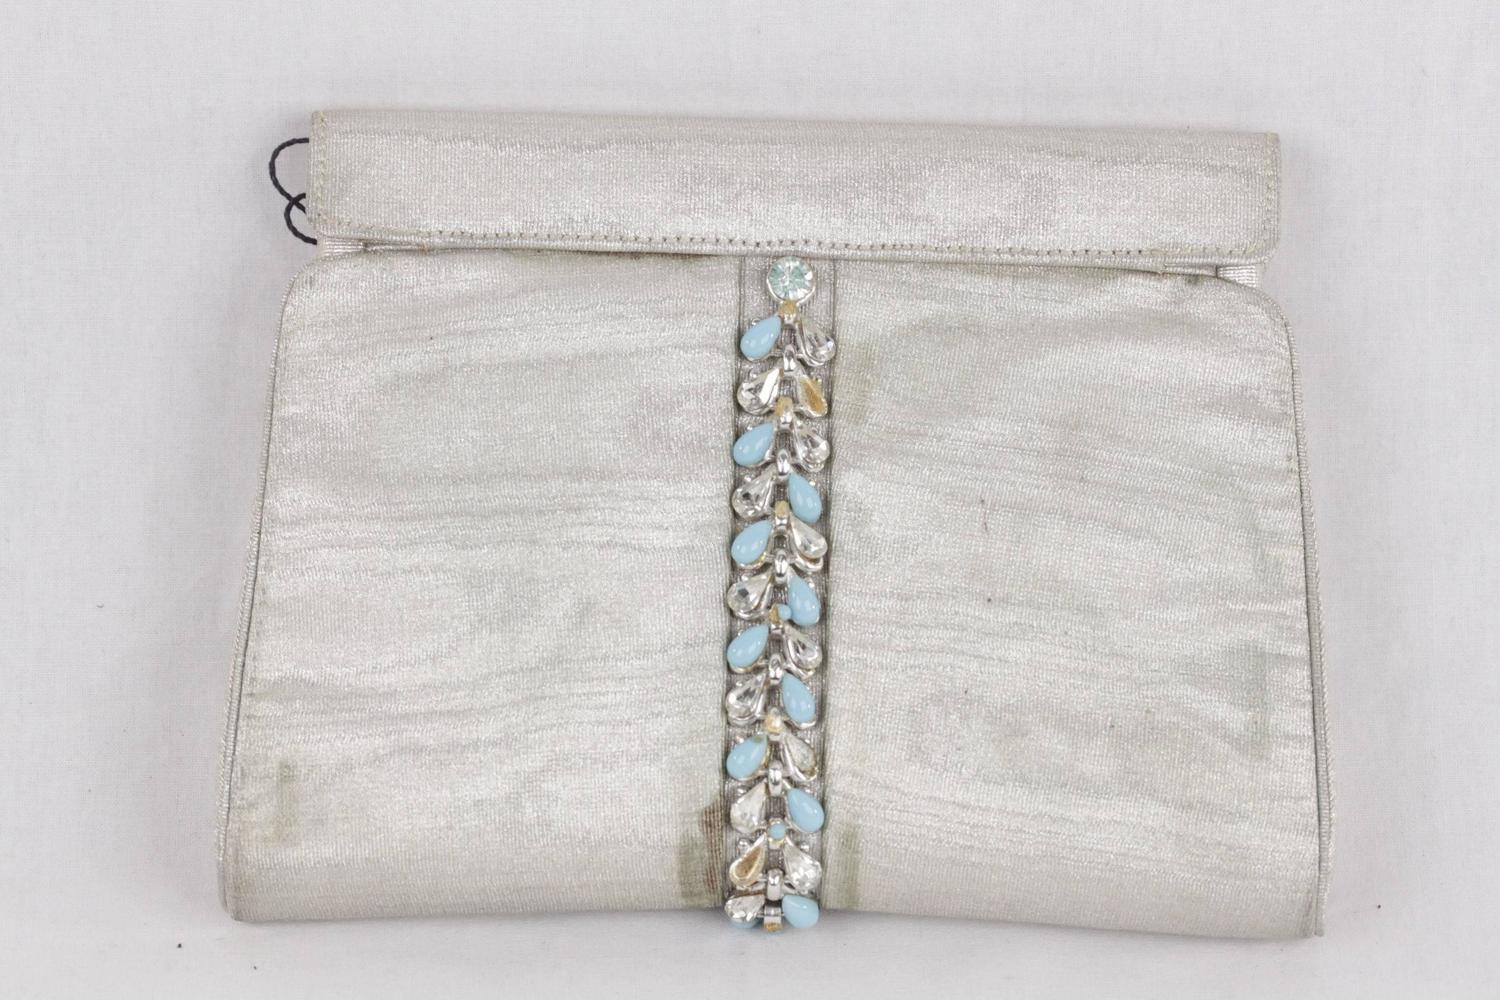 Evening Bags - Cheap Vintage Evening Clutch Bags For